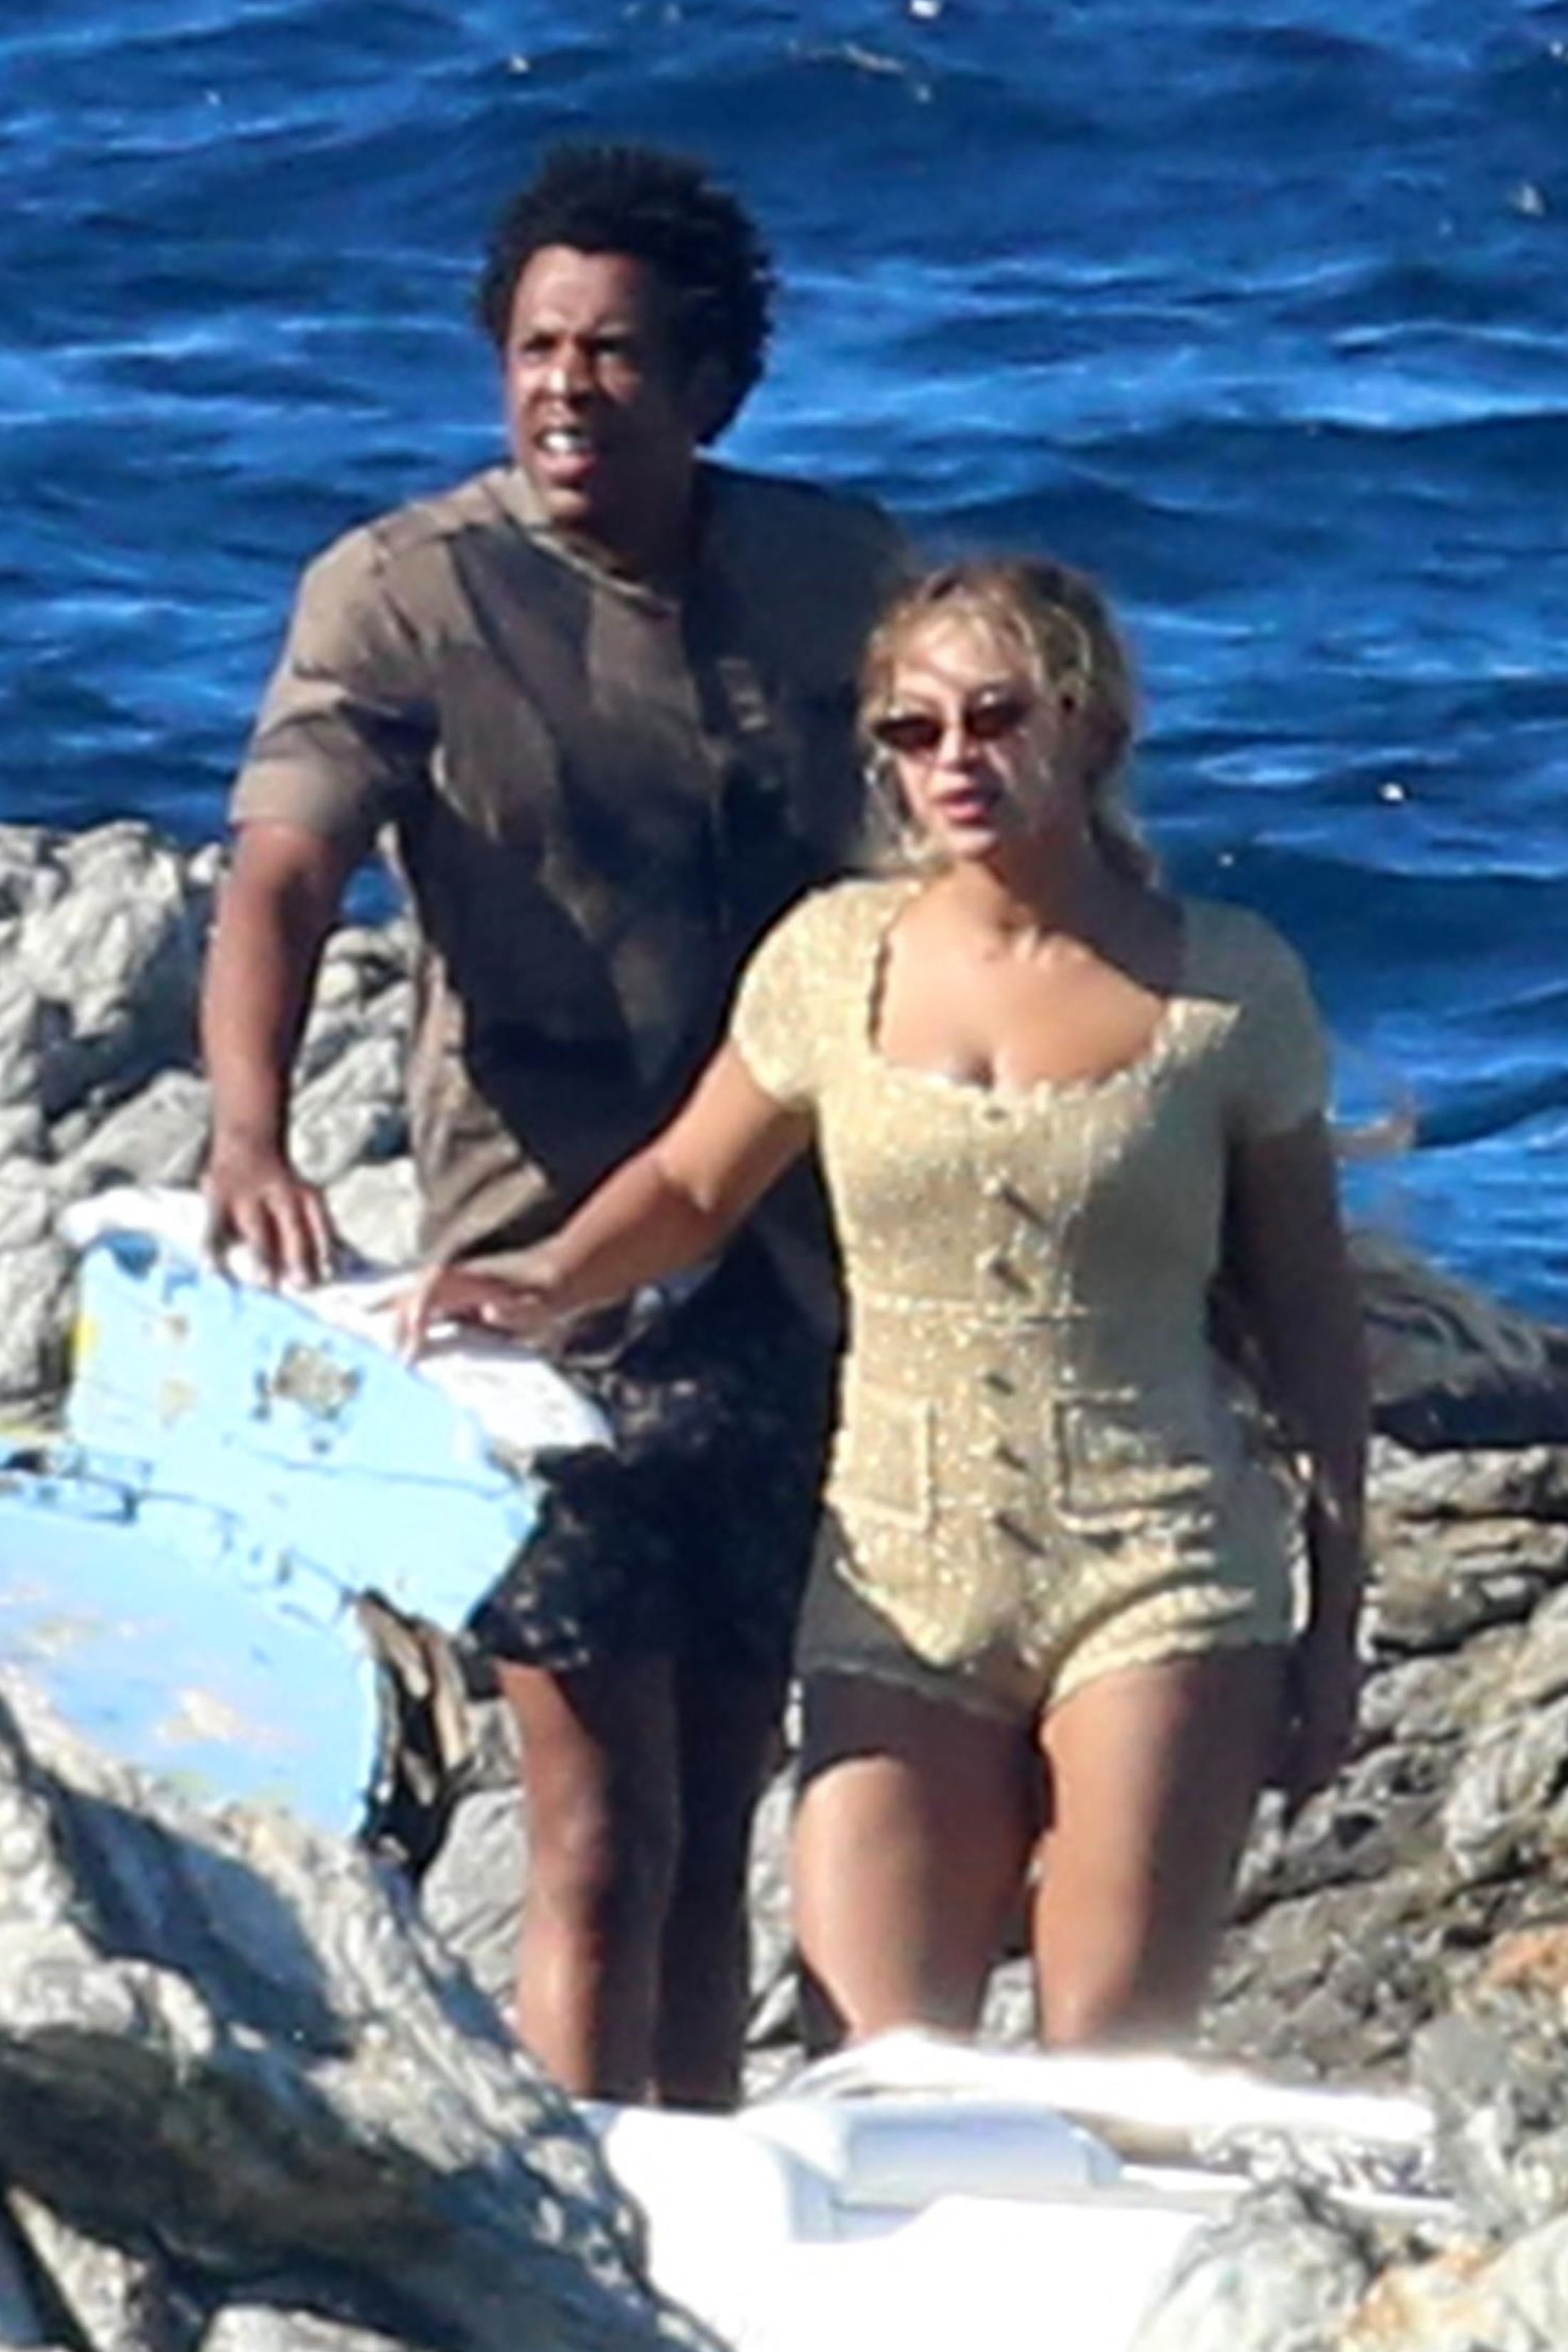 Beyonce and Jay Z spend the day on a lavish private yacht in Sardinia  on Sept. 8, 2018.